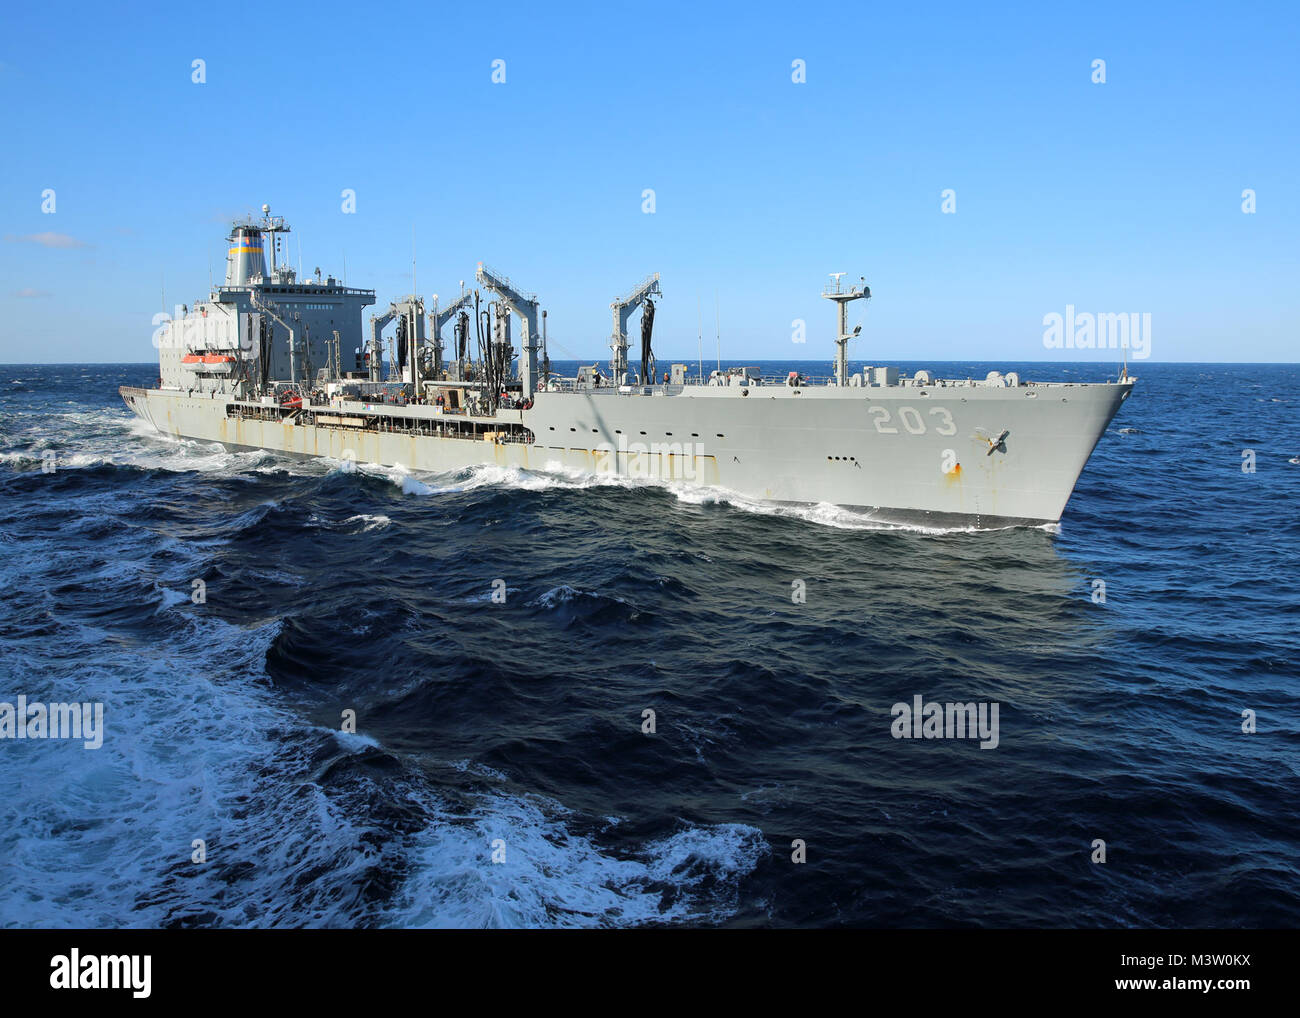 170323-N-OH262-991  ATLANTIC OCEAN (March 23, 2017) The Military Sealift Command fleet replenishment oiler USNS - Stock Image